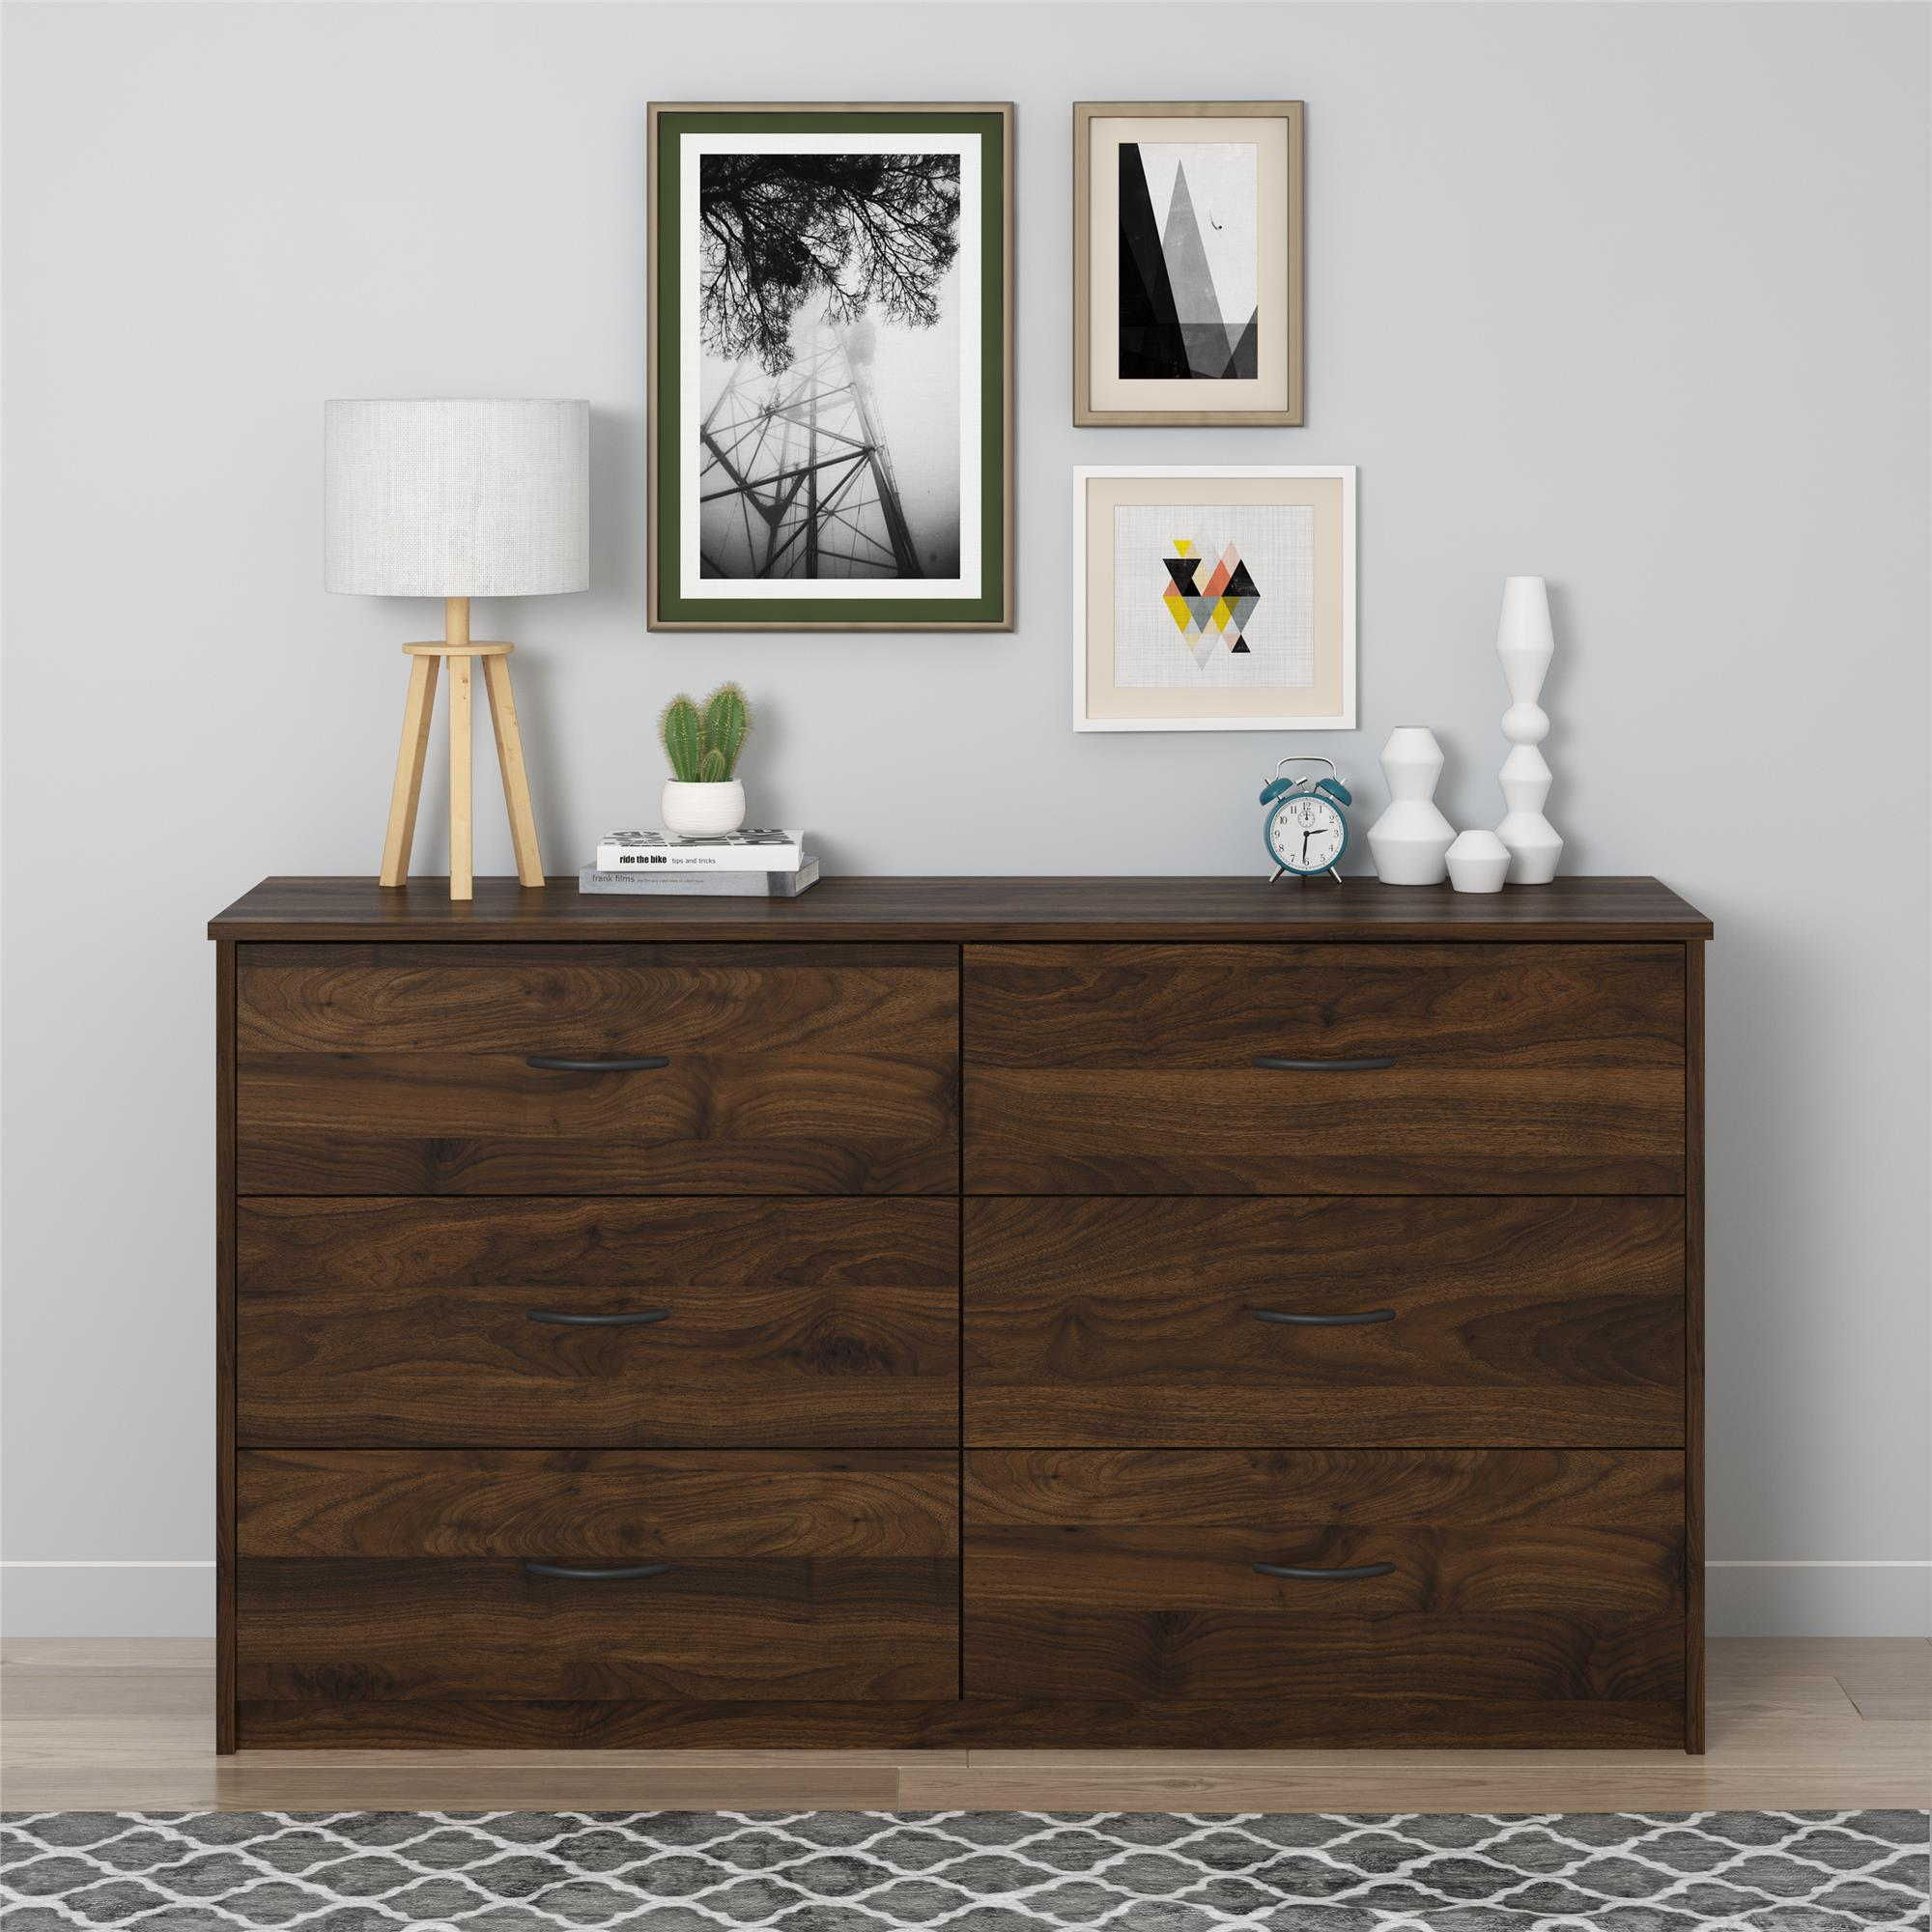 Mainstays 6 Drawer Dresser, Columbia Walnut